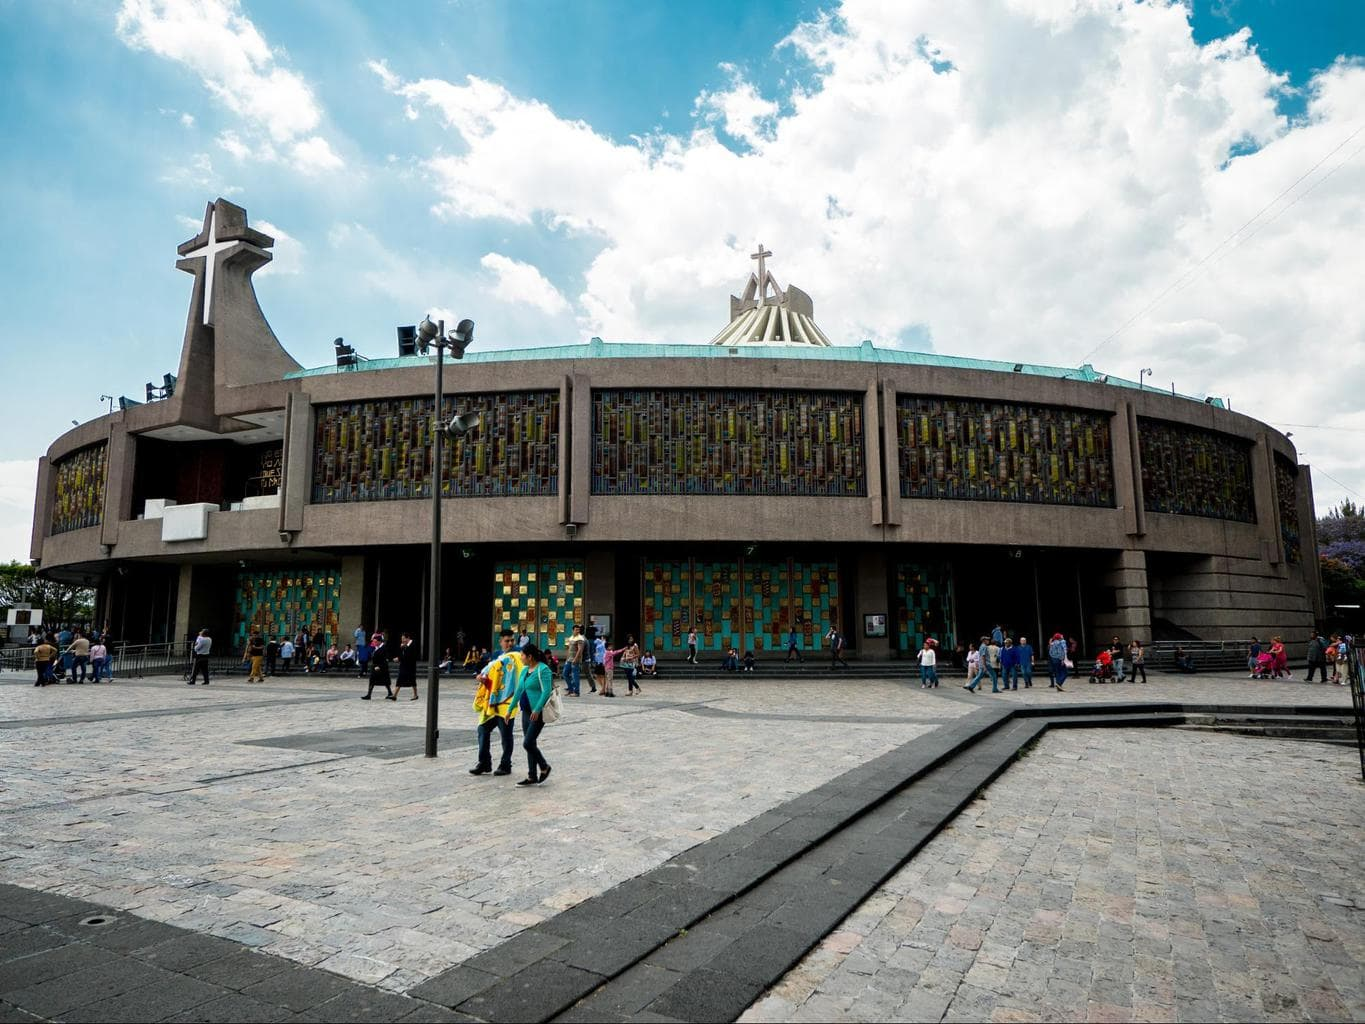 The new building for the Lady of Guadalupe Basilica